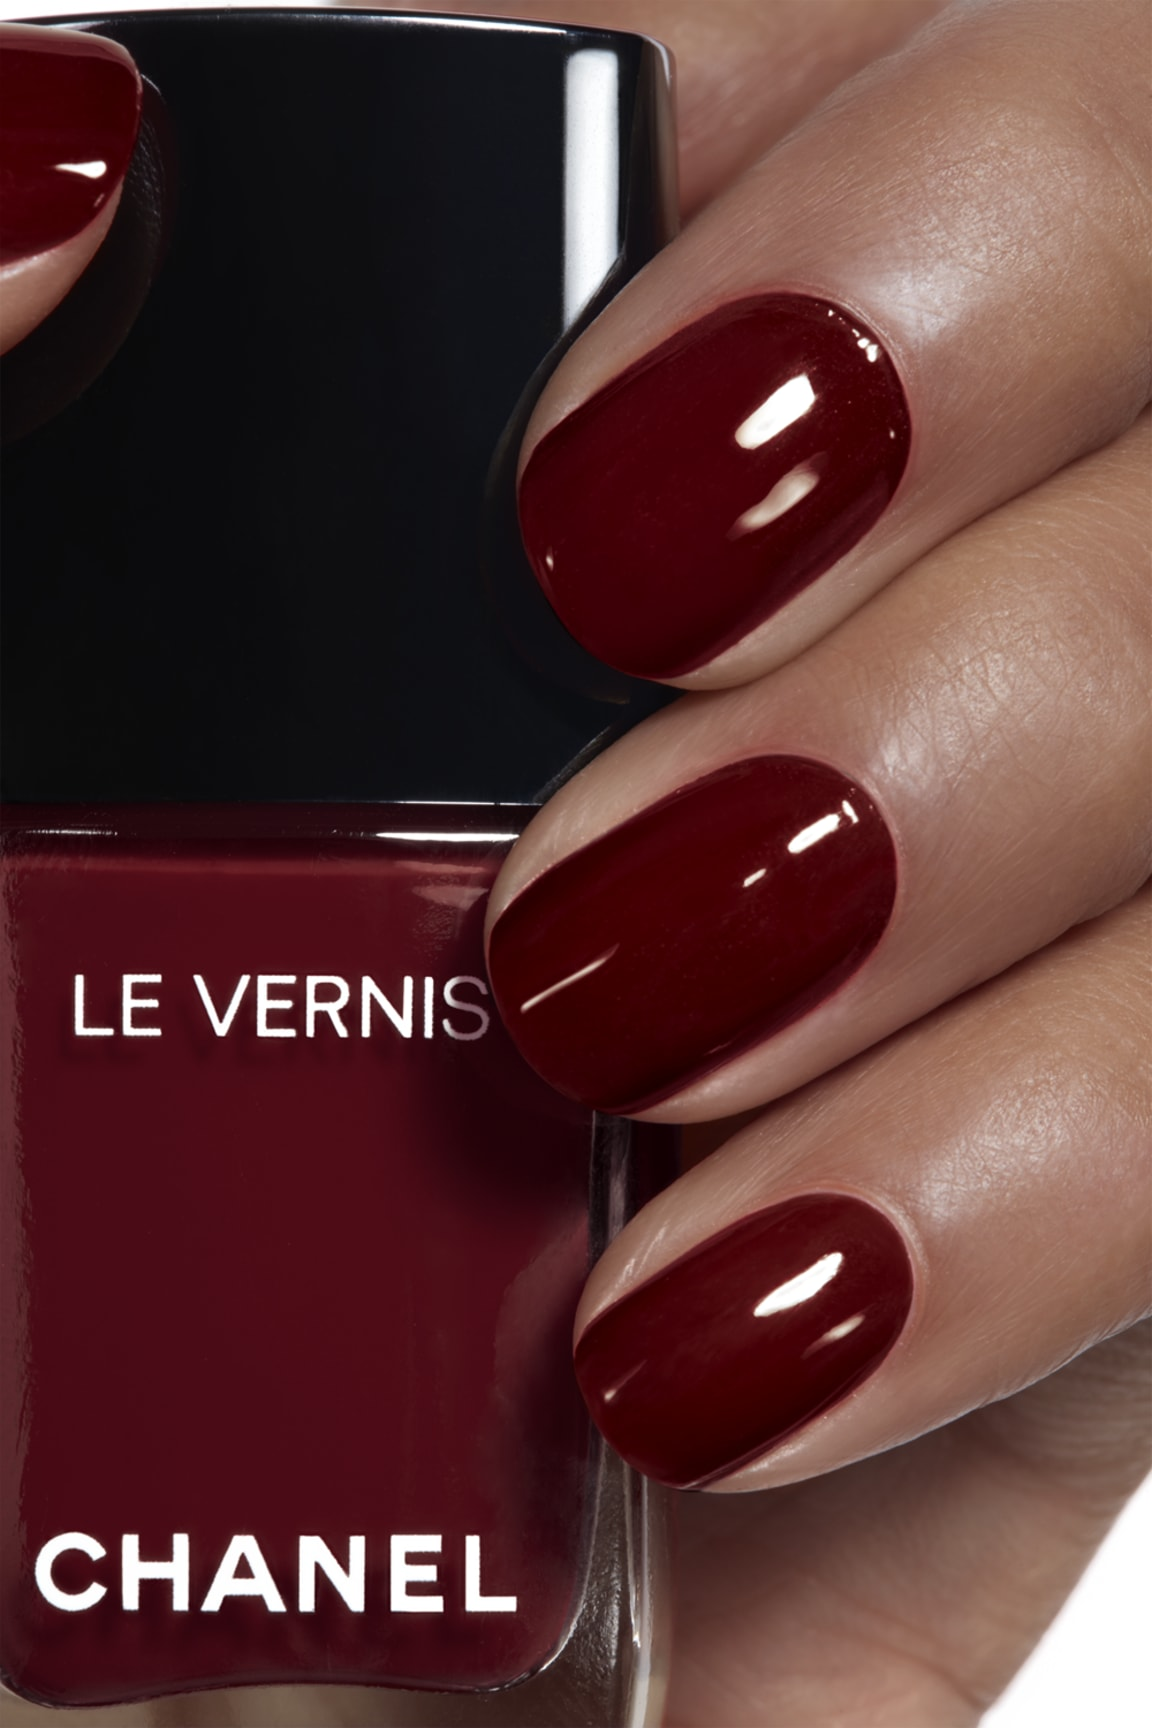 Anwendung Make-up-Bild 1 - LE VERNIS 765 - INTERDIT